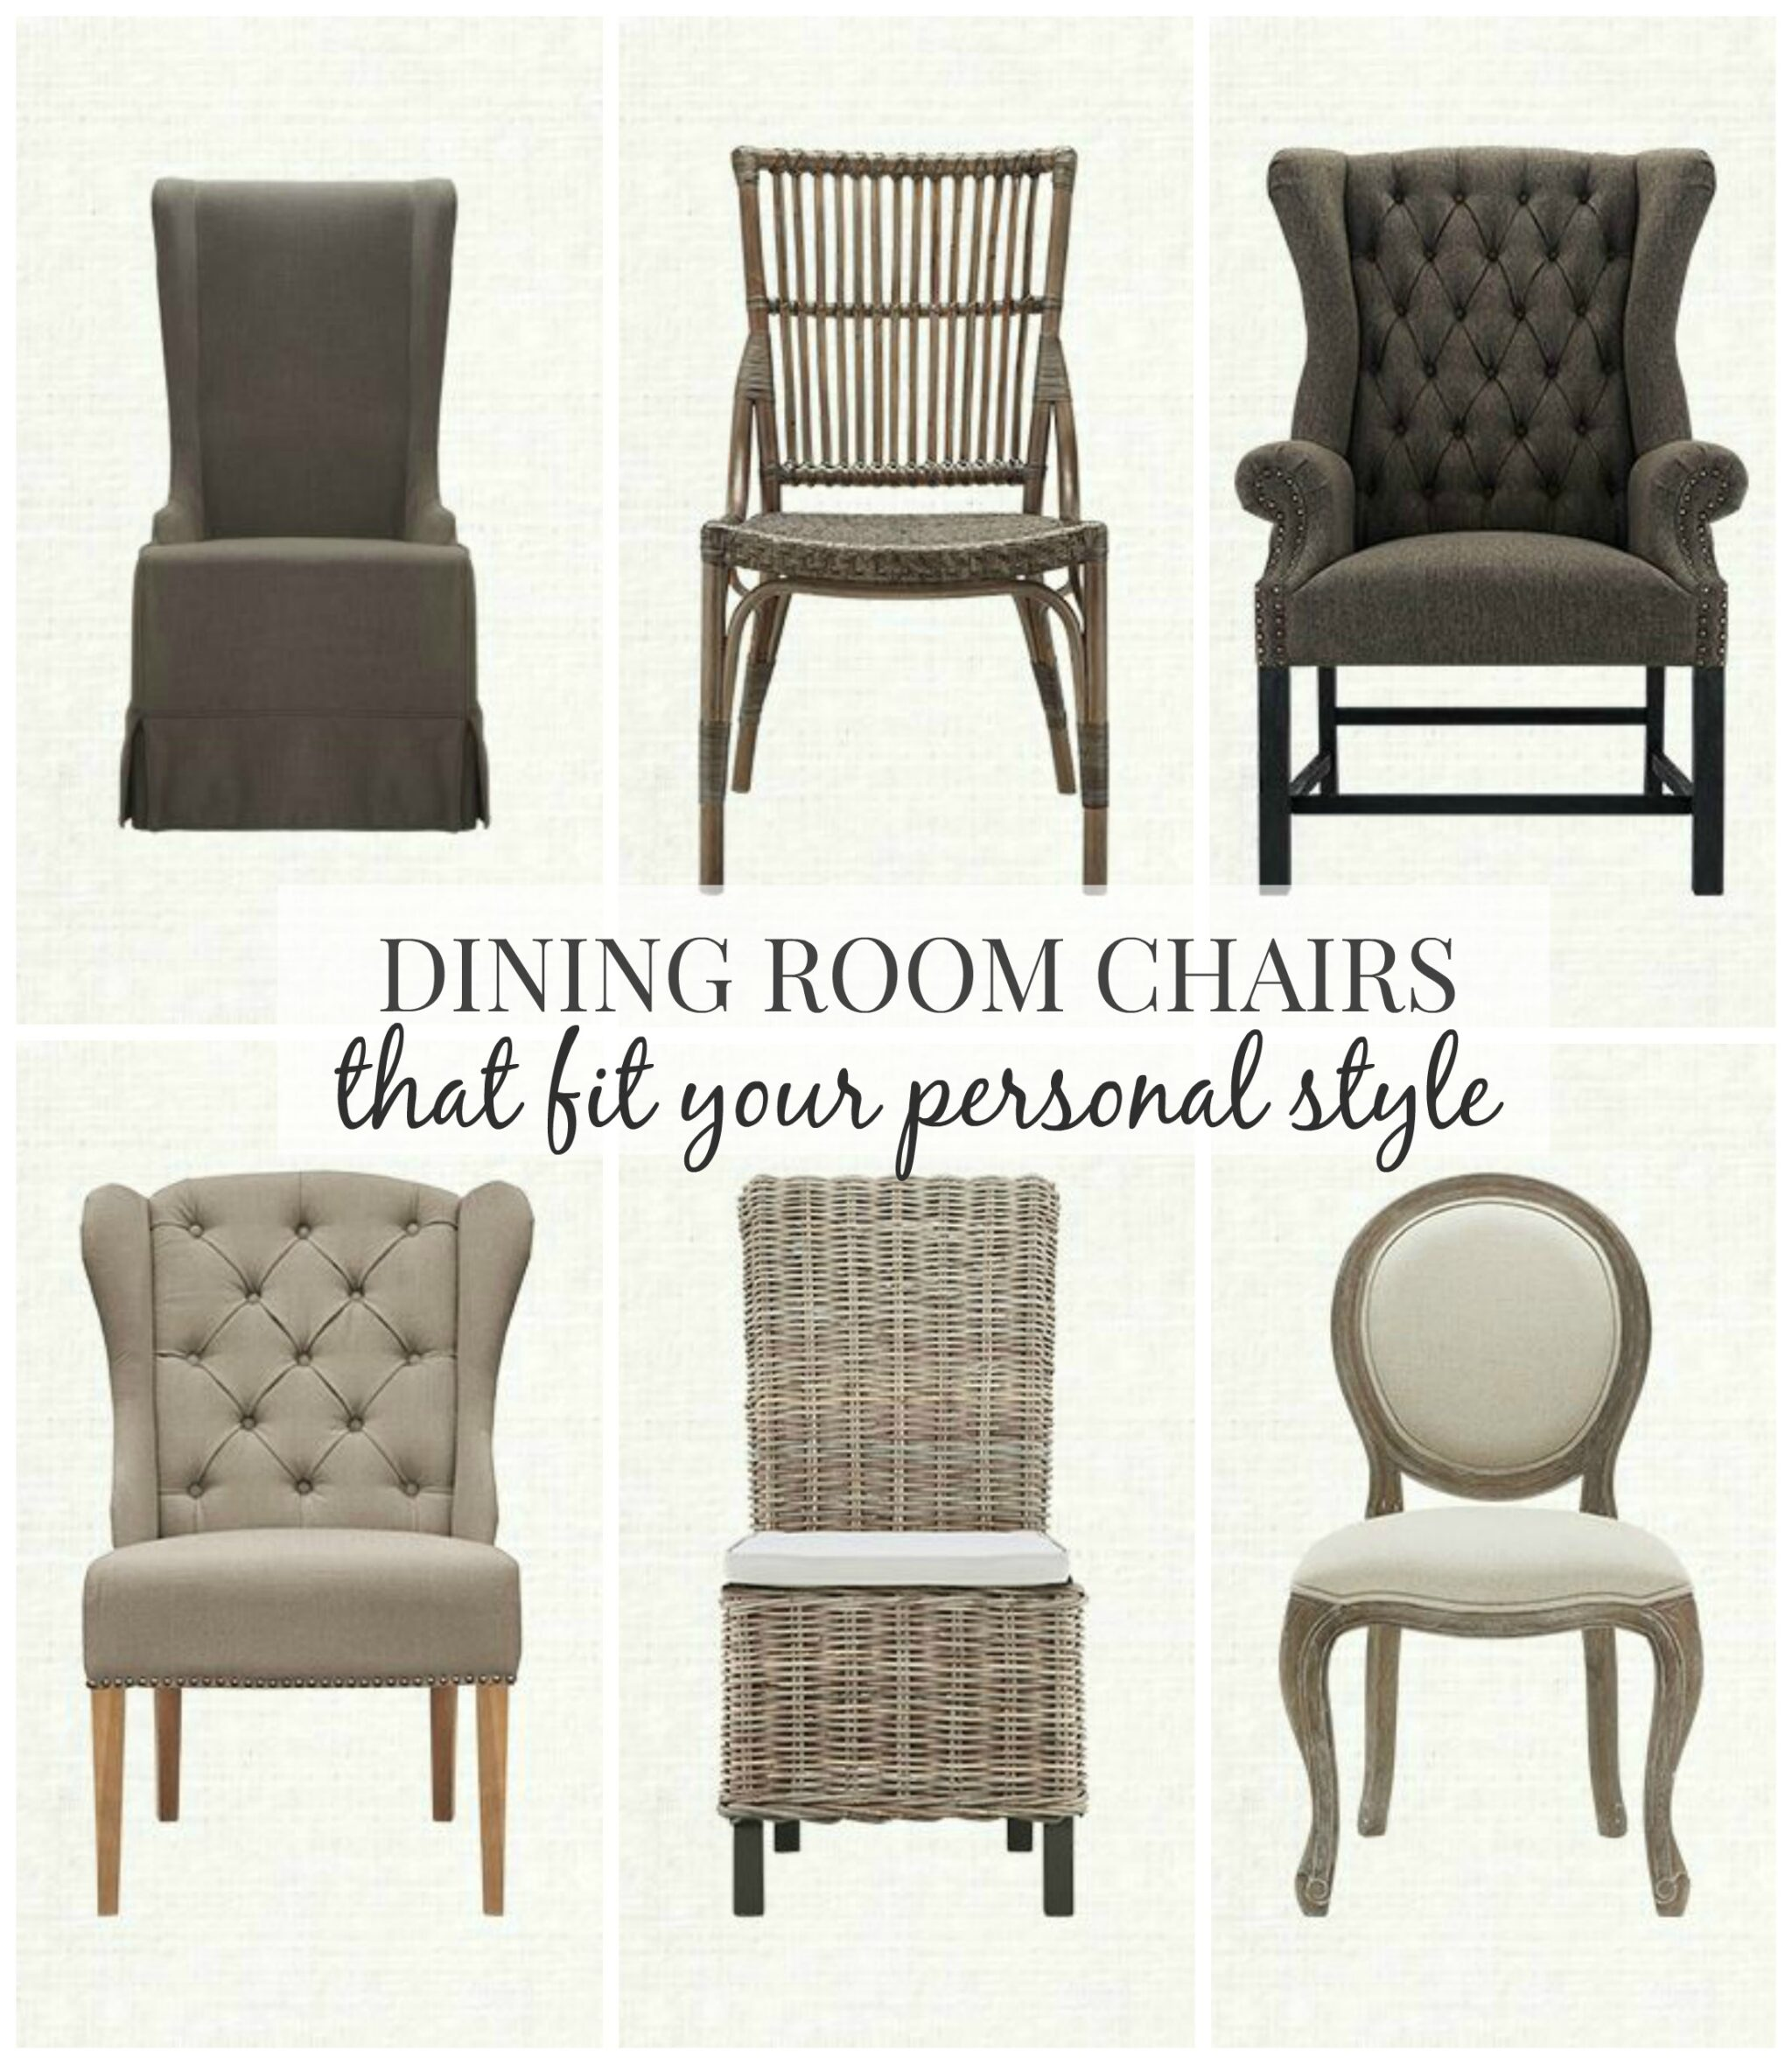 arhaus capri dining chairs papasan double chair small house interior design room that fit your personal style city cadence